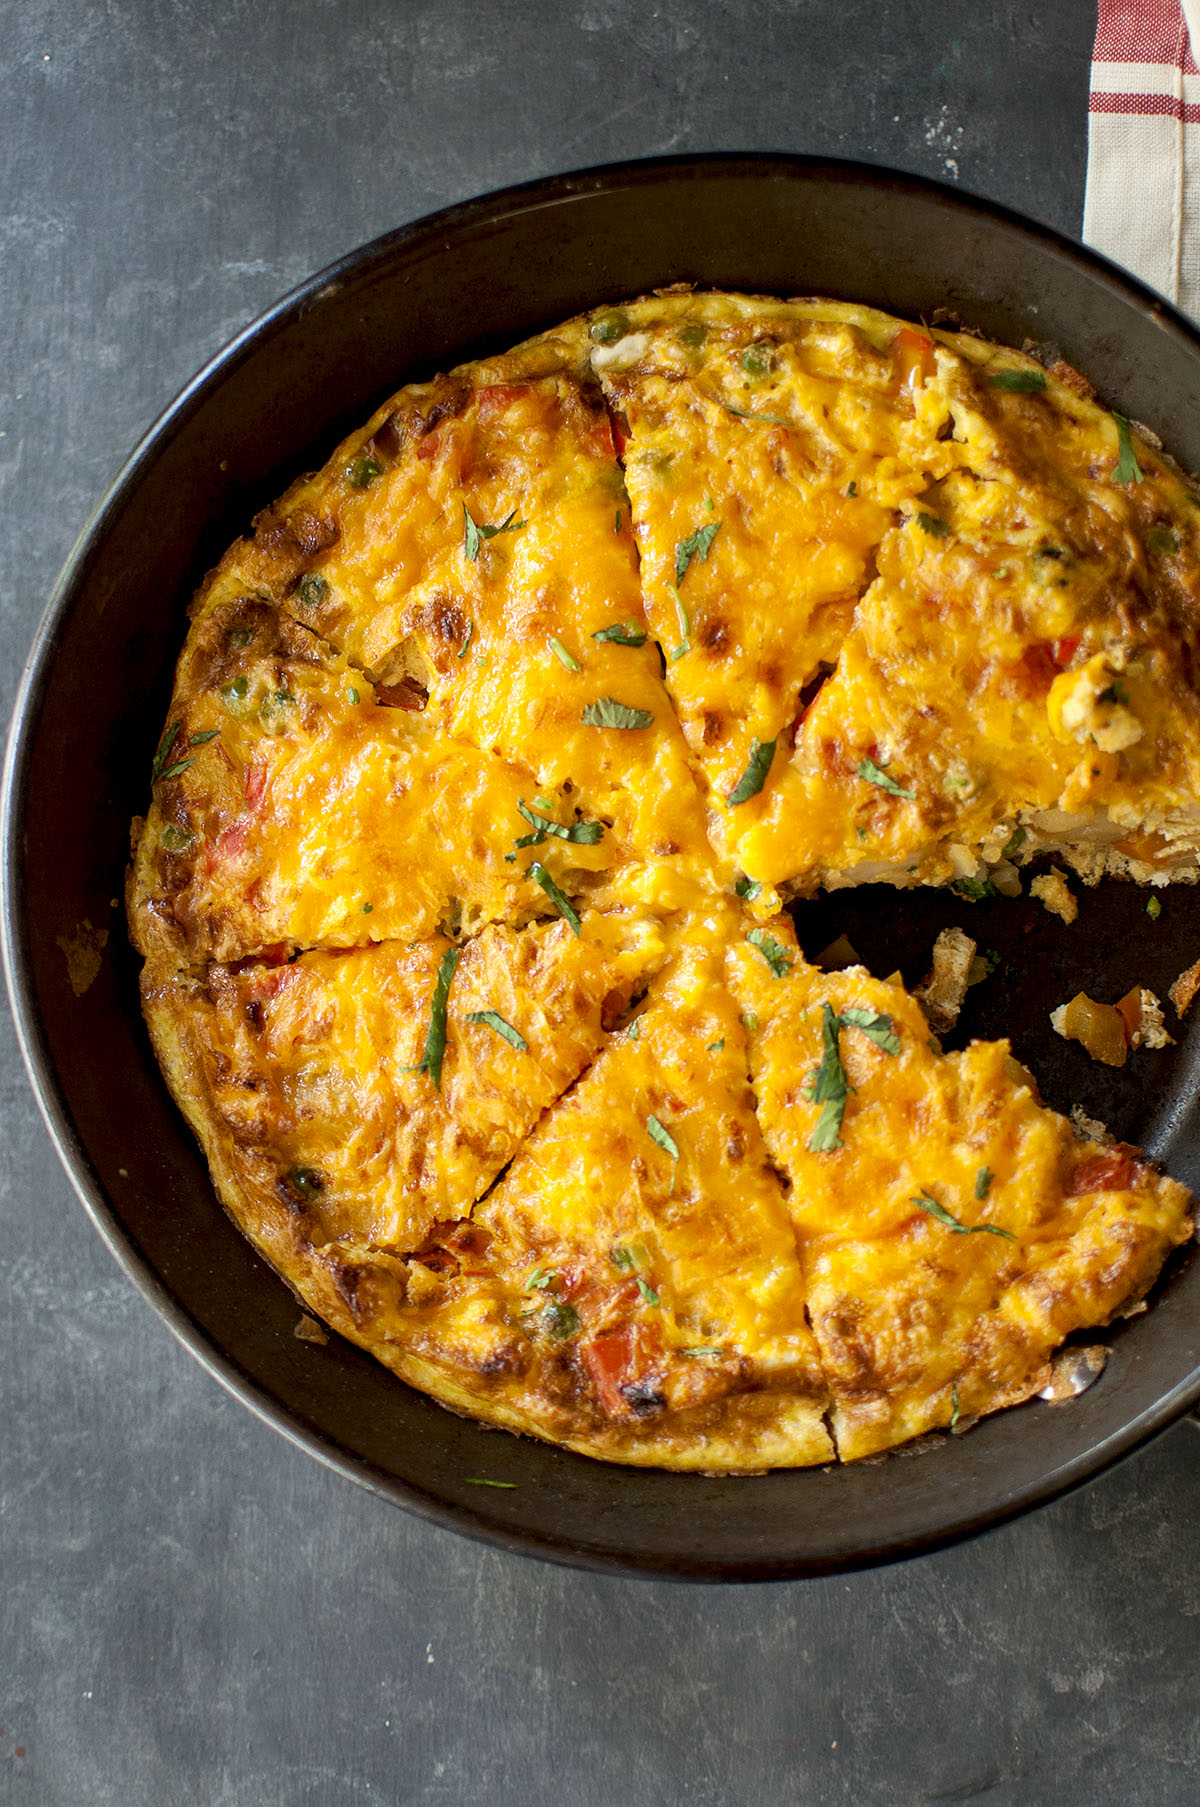 Nonstick skillet with cheesy frittata with a wedge taken out